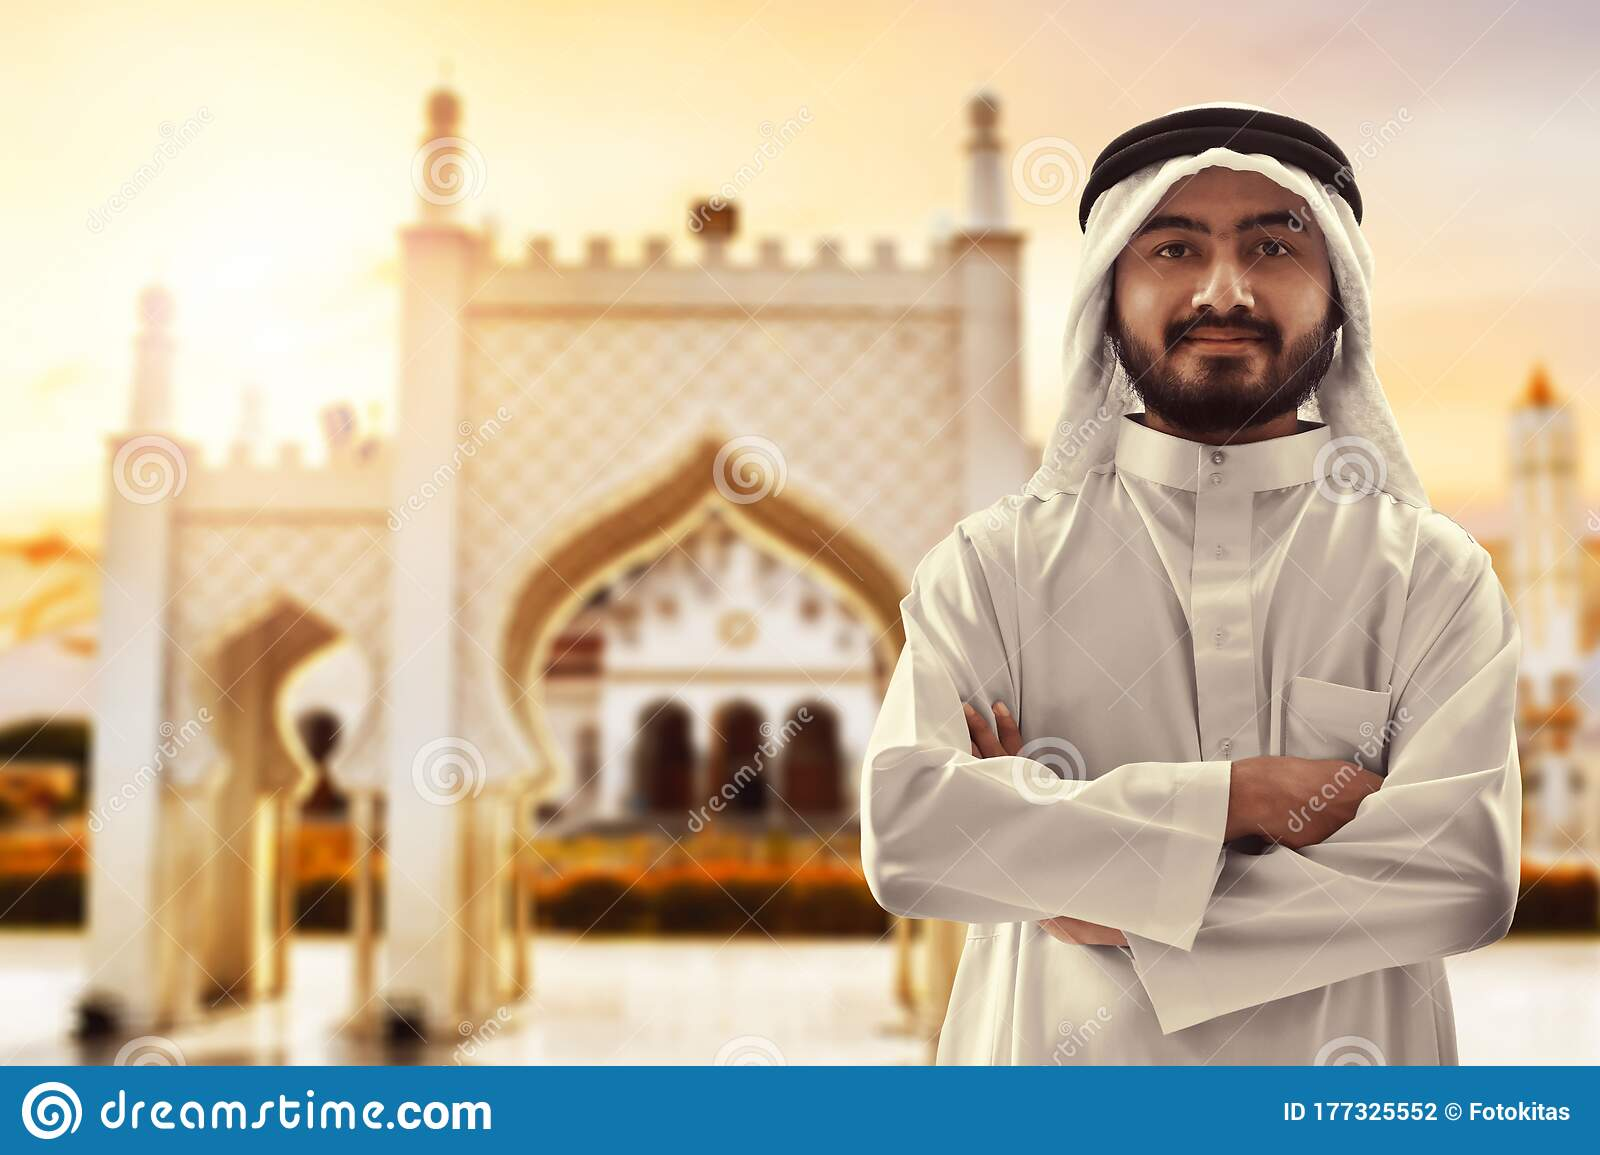 Portrait Of Young Arab Man At Baiturrahman Grand Mosque Banda Aceh Stock Photo Image Of Architecture Background 177325552